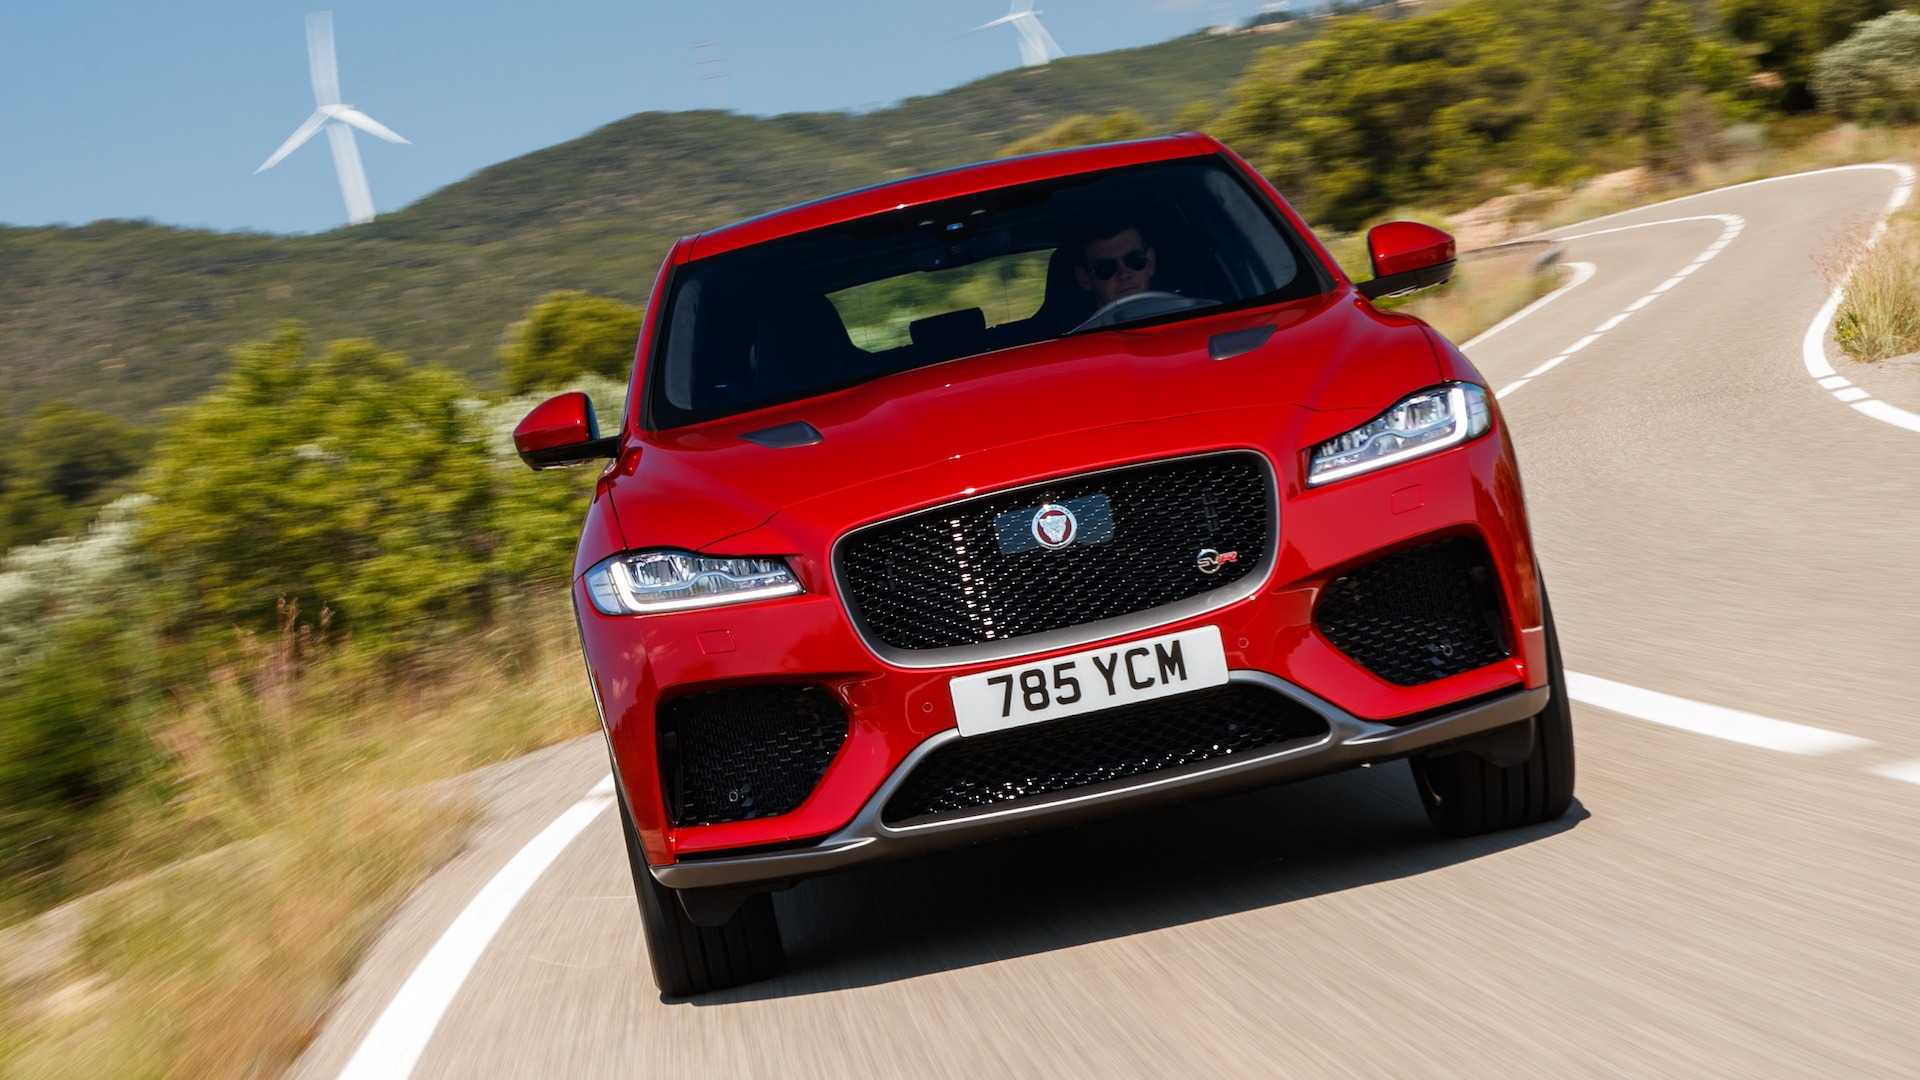 34 Great New Xe Jaguar 2019 First Drive Price Performance And Review Prices with New Xe Jaguar 2019 First Drive Price Performance And Review